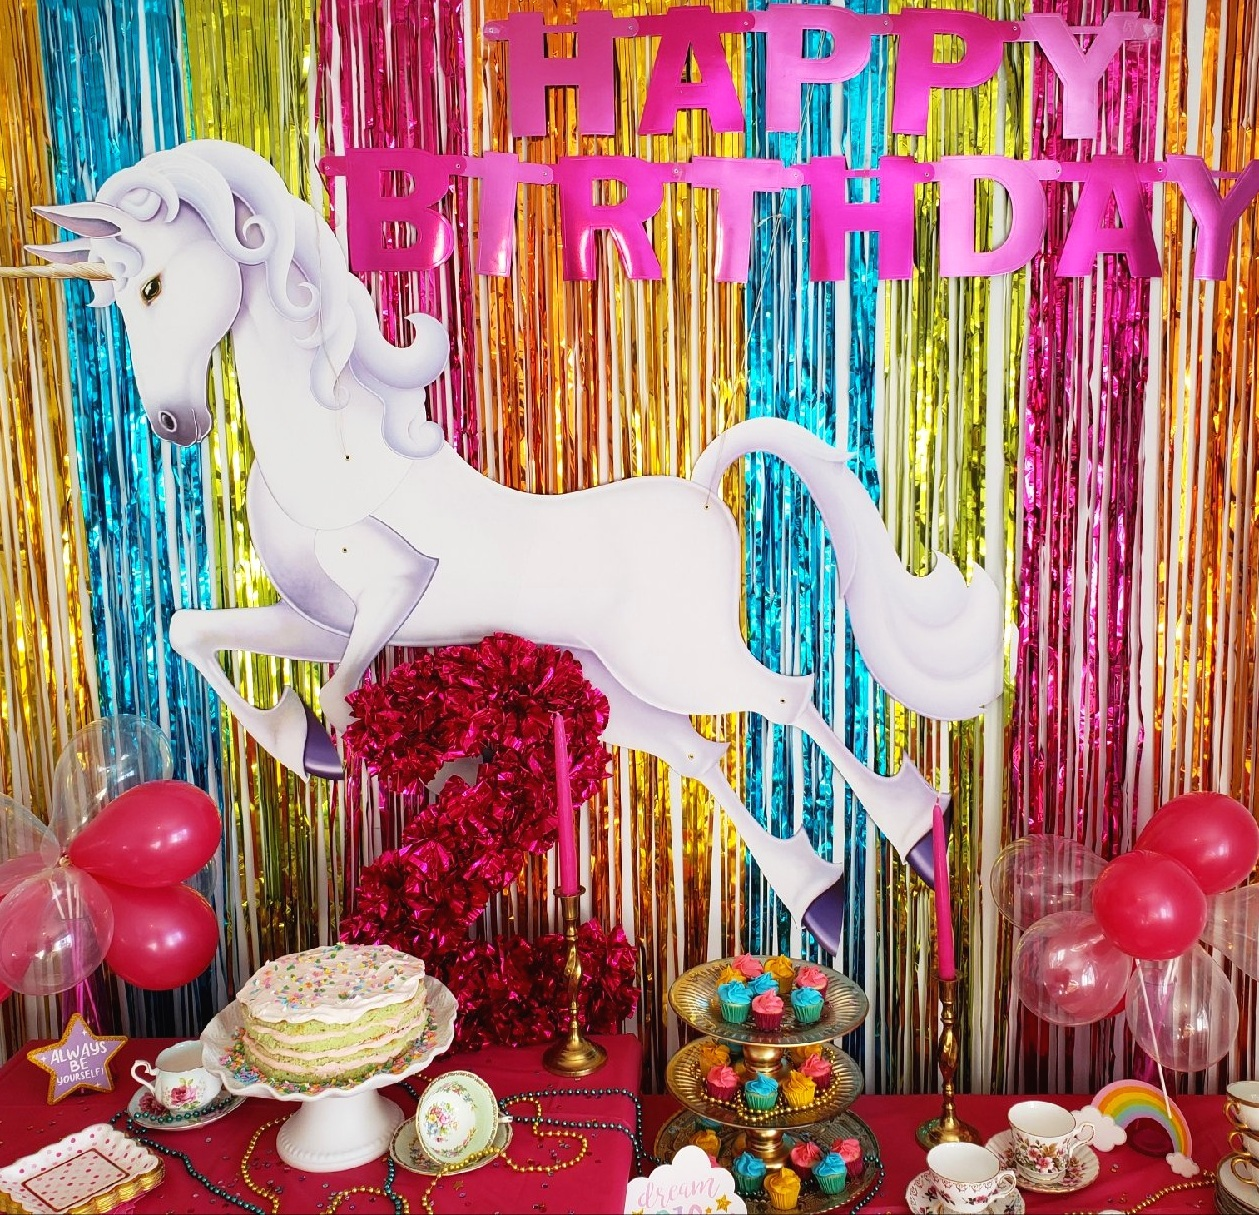 Every little girl loves rainbows! For this party, we went through our kitchen cupboards and gathered up some old tea cups, found some antique candle holders, leftover beads from another party, blew up some balloons and voila, we had a cheery little party! Use our inspiration to WOW your little girl at her next party!